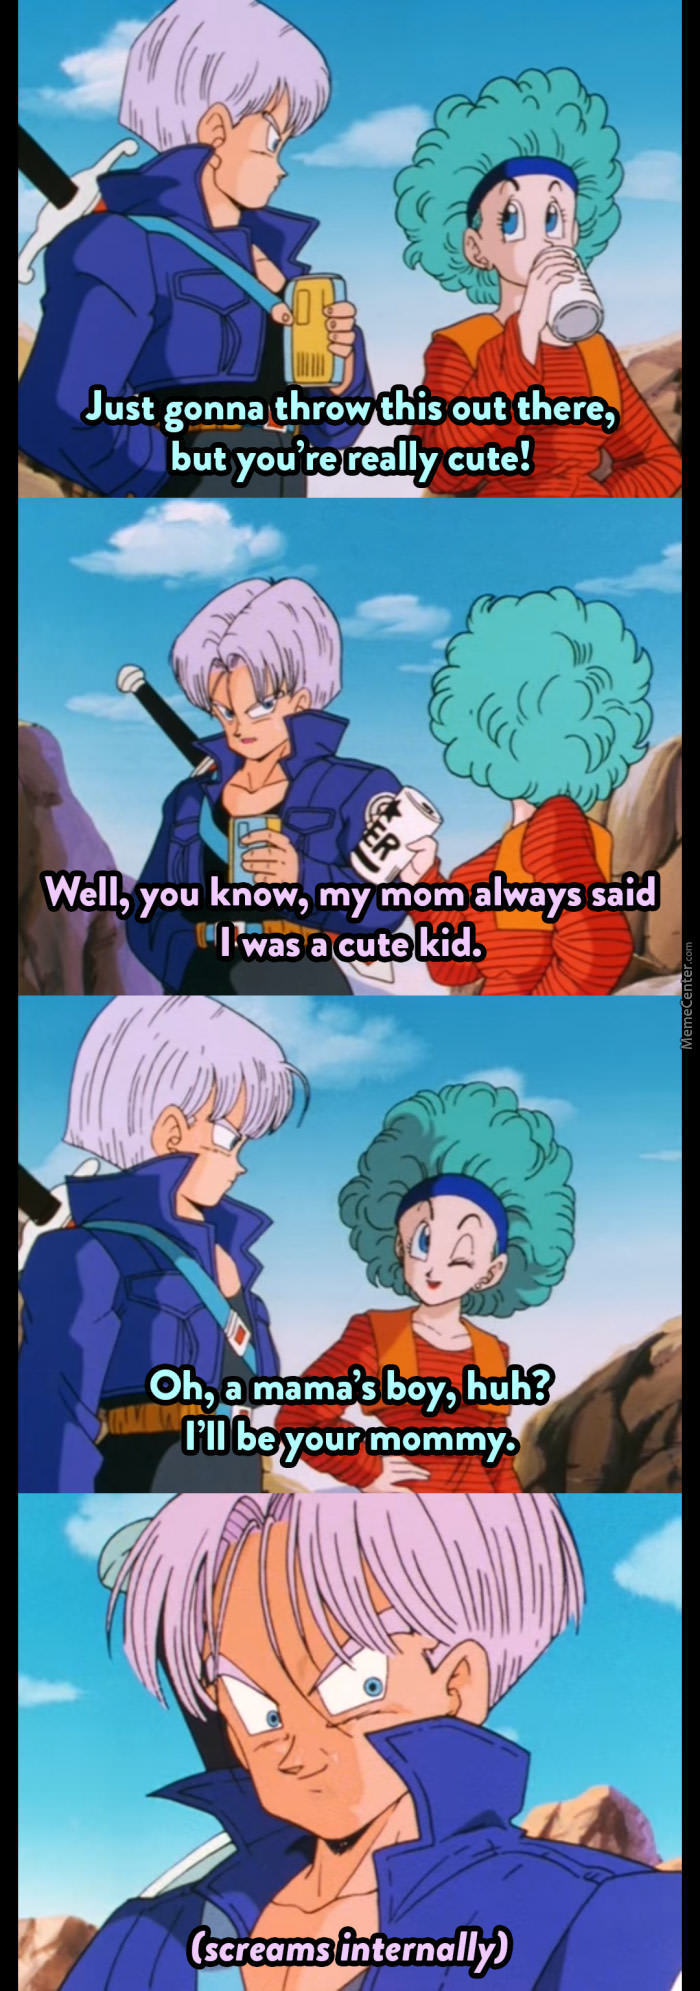 From Dragonball Z Abridged By Teamfourstar Episode 33 On Youtube!